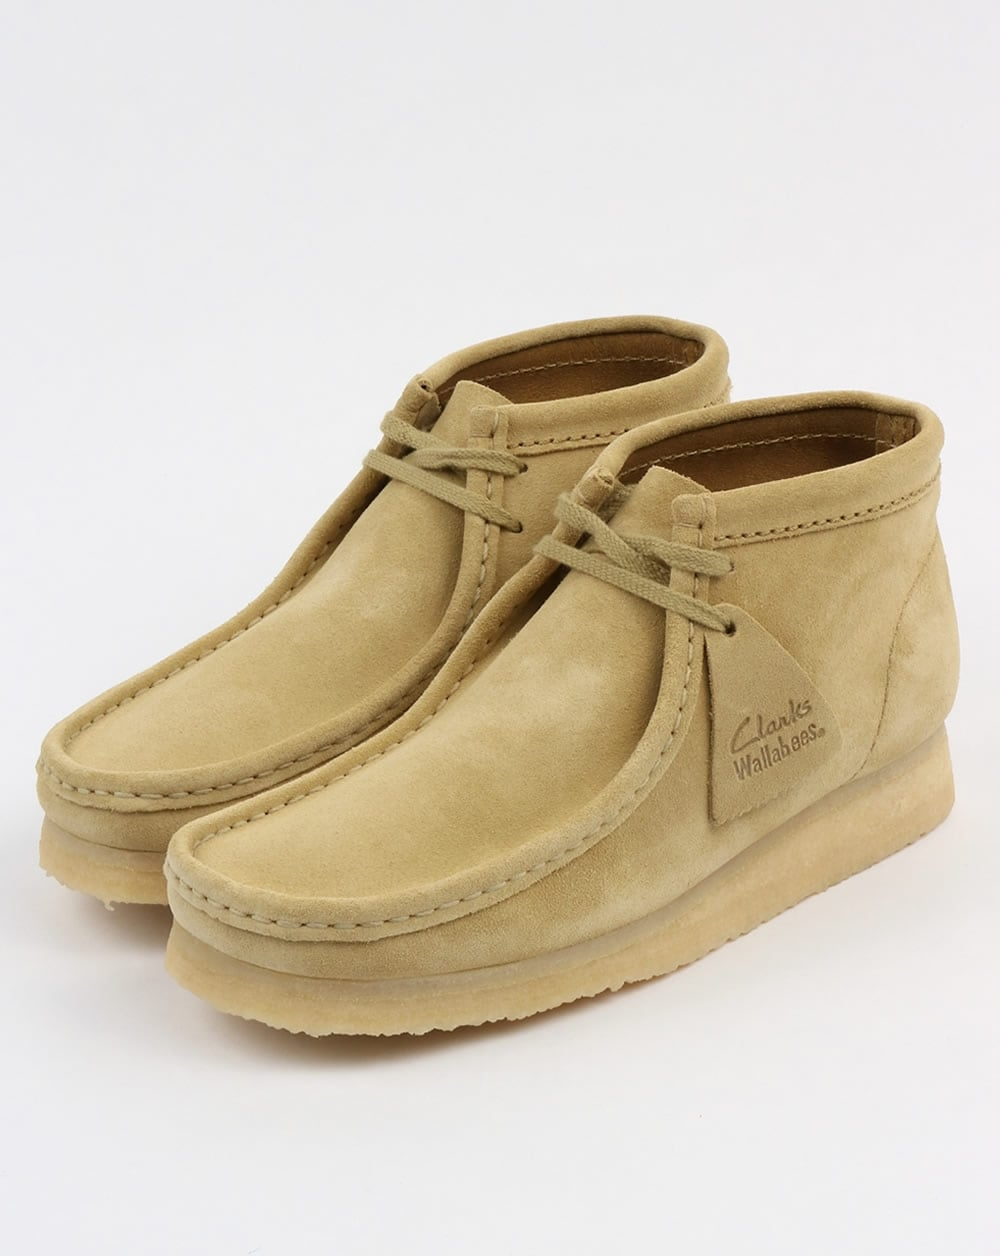 Clarks Low Suede Wallabee Moccasins Vente Pas Cher Authentique Jeu Confortable A7eO6N8